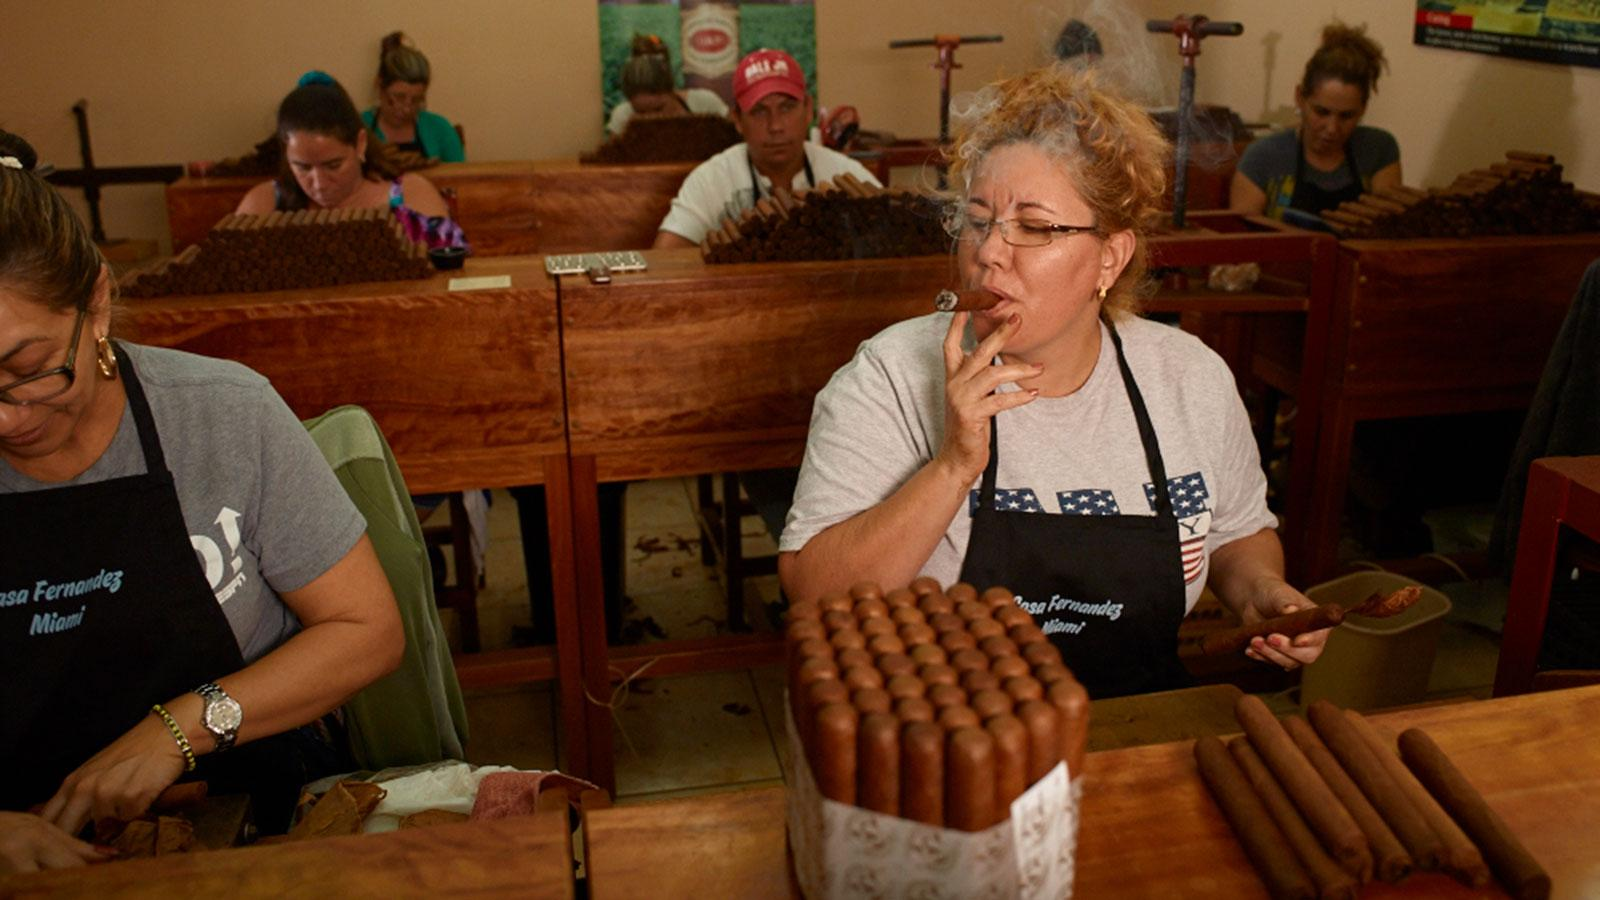 Photo of inside Aganorsa Leaf cigar factory in Miami, Florida.